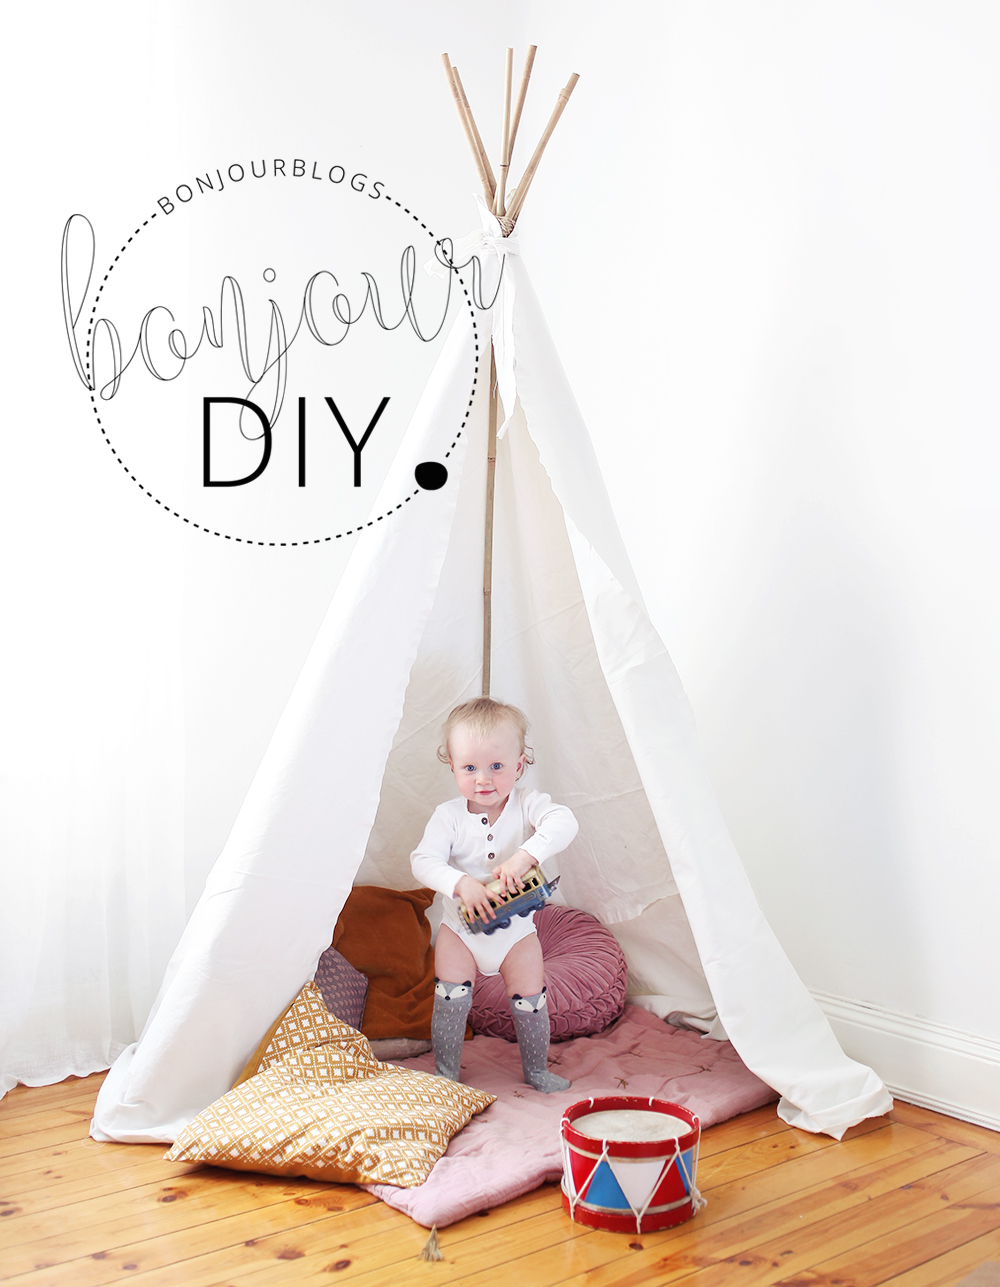 tepee-diy-kids-decor